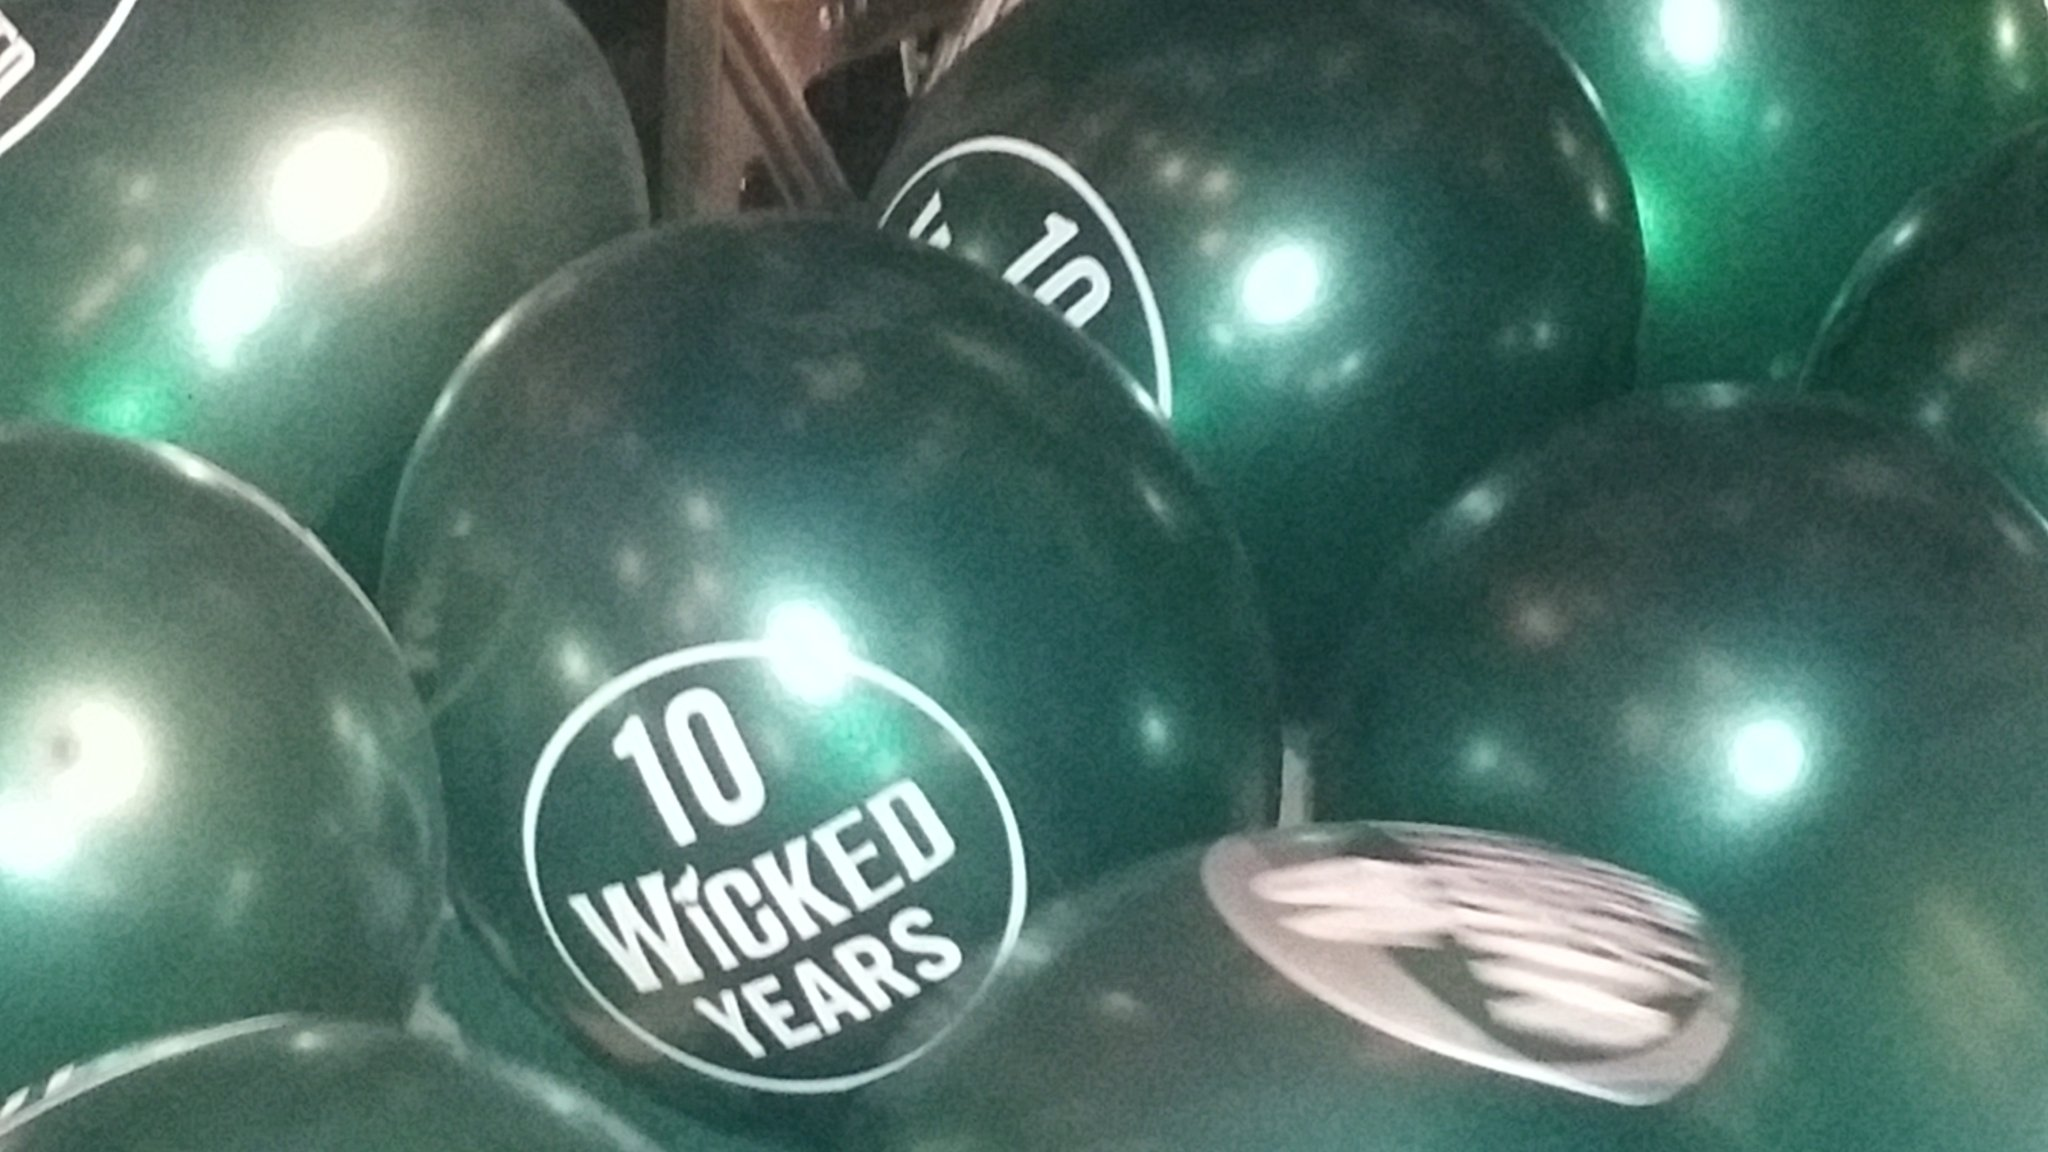 Fantastic celebration of 10 years of @WickedUK last night. WELL DONE everyone. A superb performance. https://t.co/Nm9Y0wGuXn